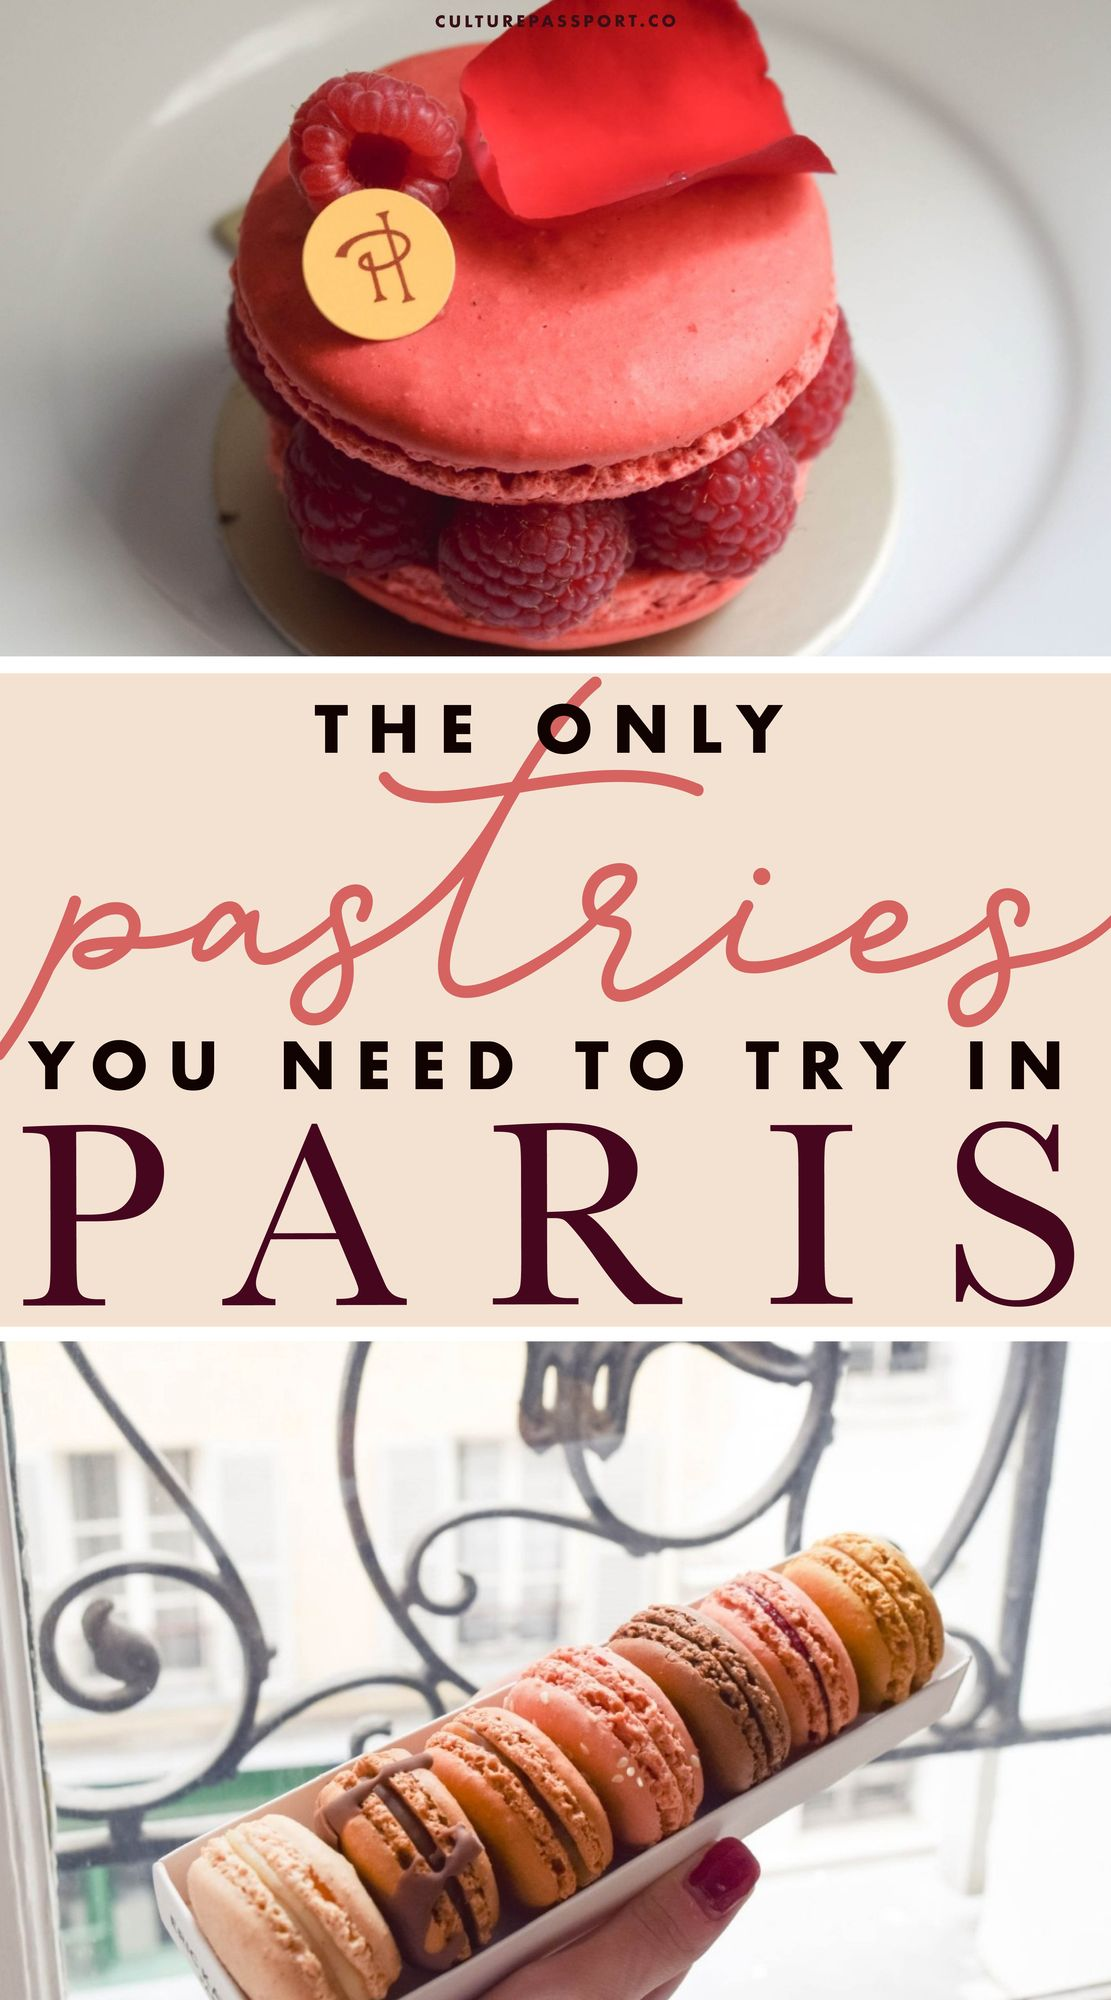 The ONLY Pastries You Need To Try In Paris